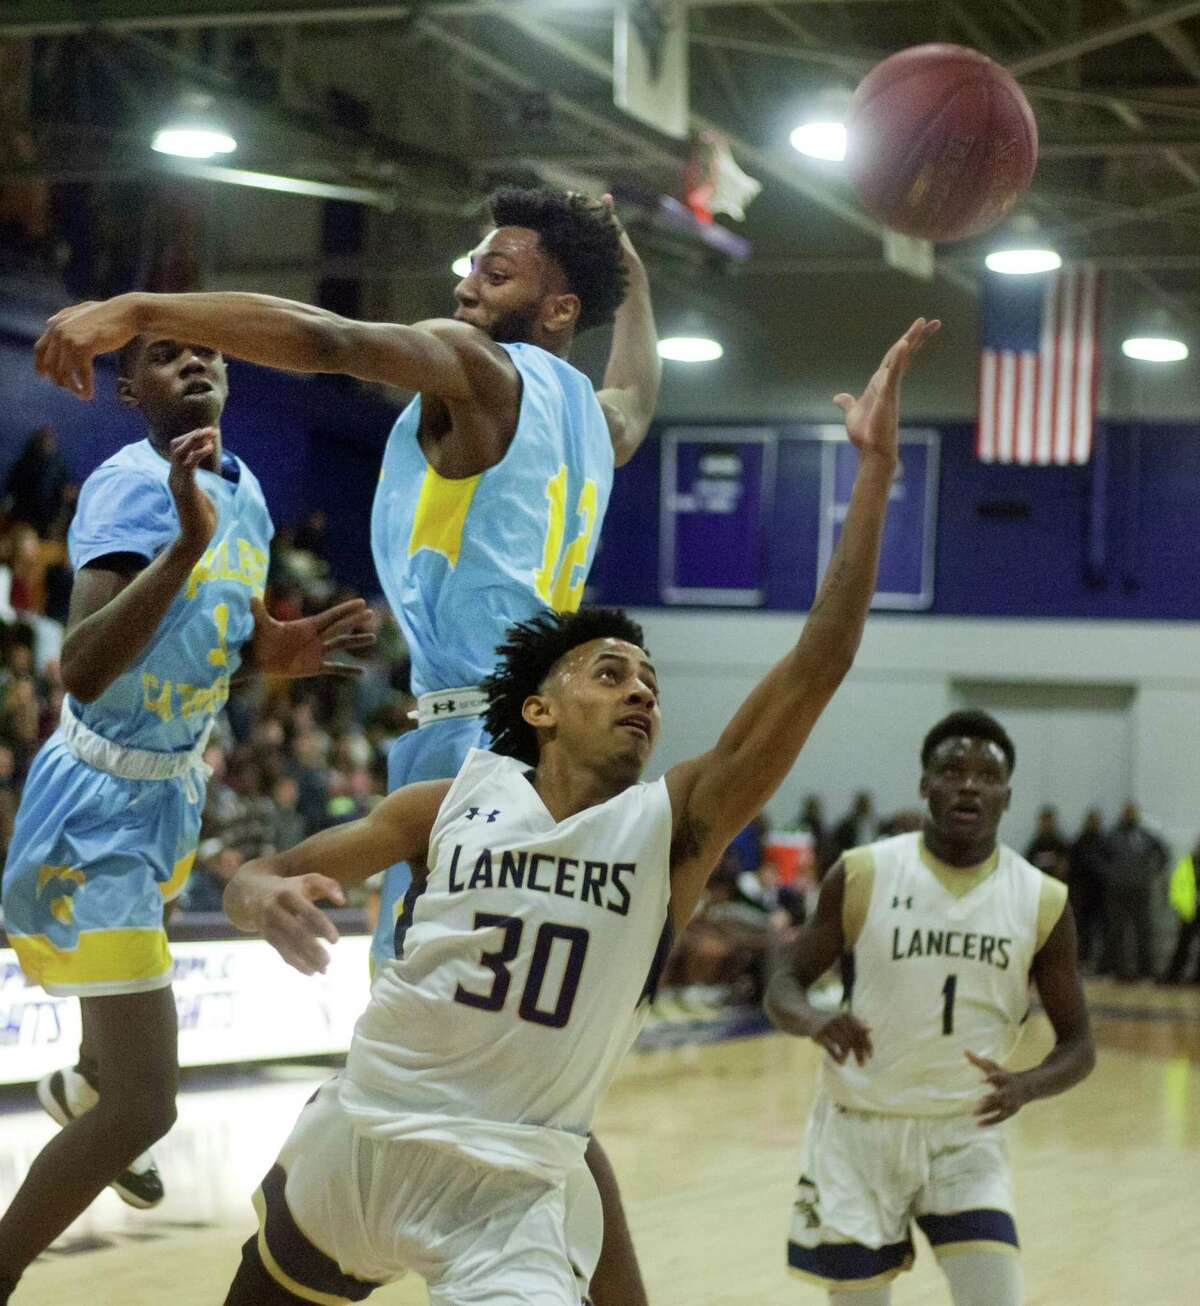 Notre Dame's Tyler Bourne lays up the ball as Kolbe Cathedral's Quinton Sneed defends during their SWC boys basketball clash Friday night at th e University of Bridgeport. Bourne scored 27 points to lead the Bulld ogs to victory.